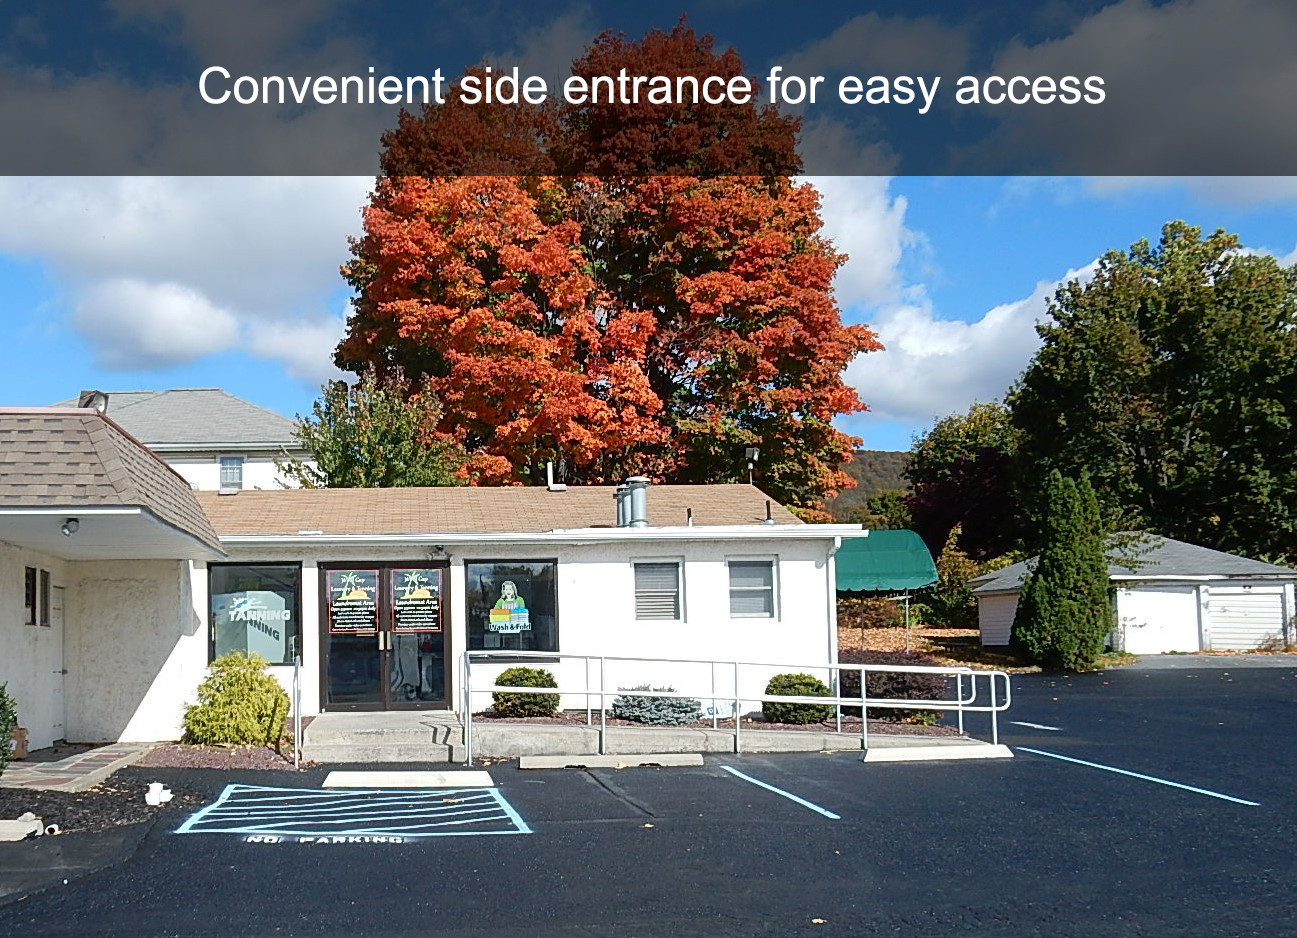 Convenient side entrance for easy access